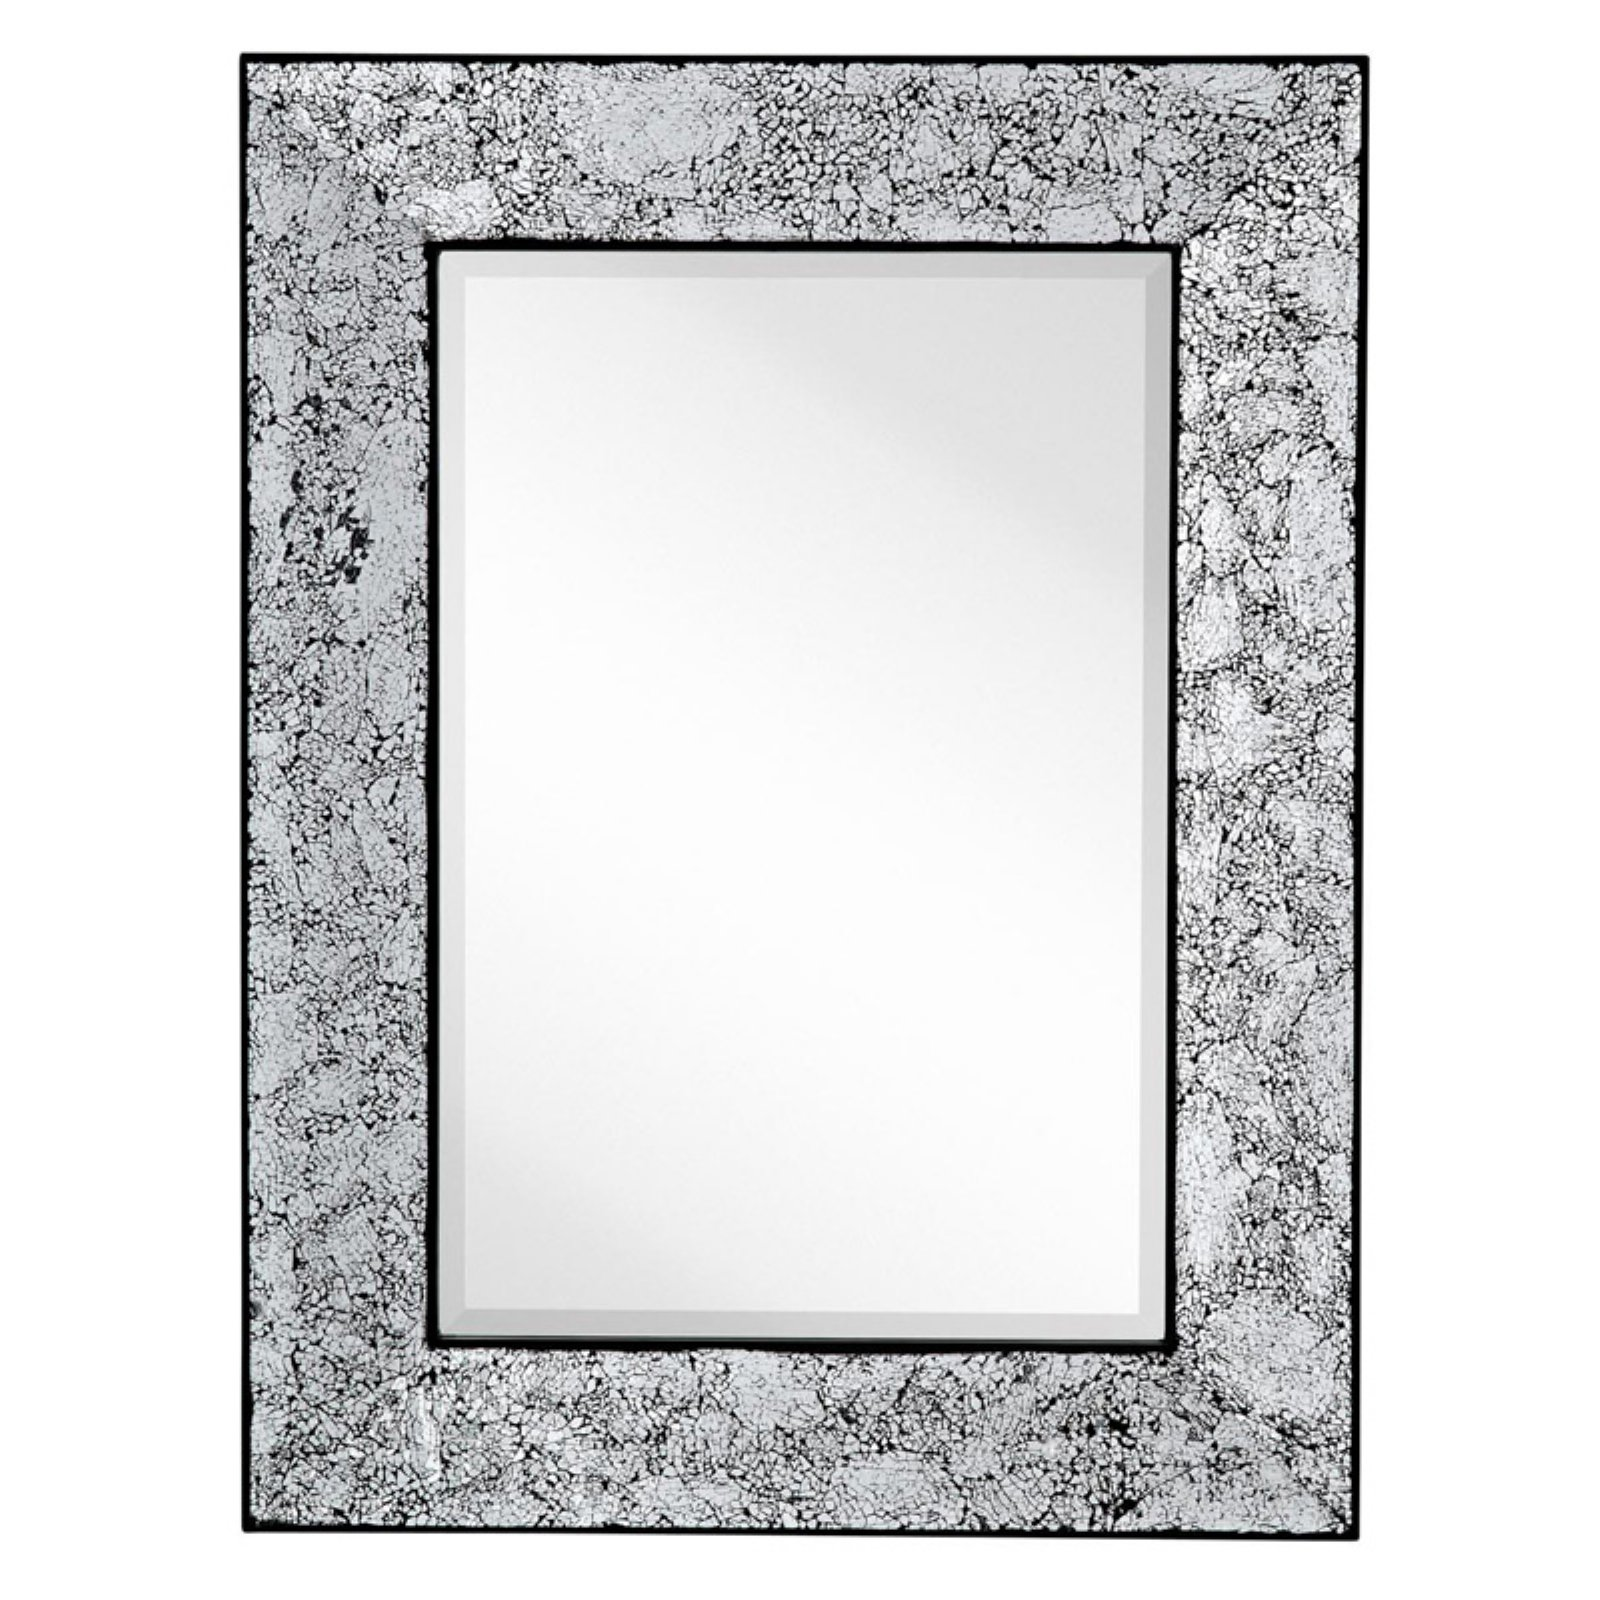 Majestic Rectangle Crackled Wall Mirror